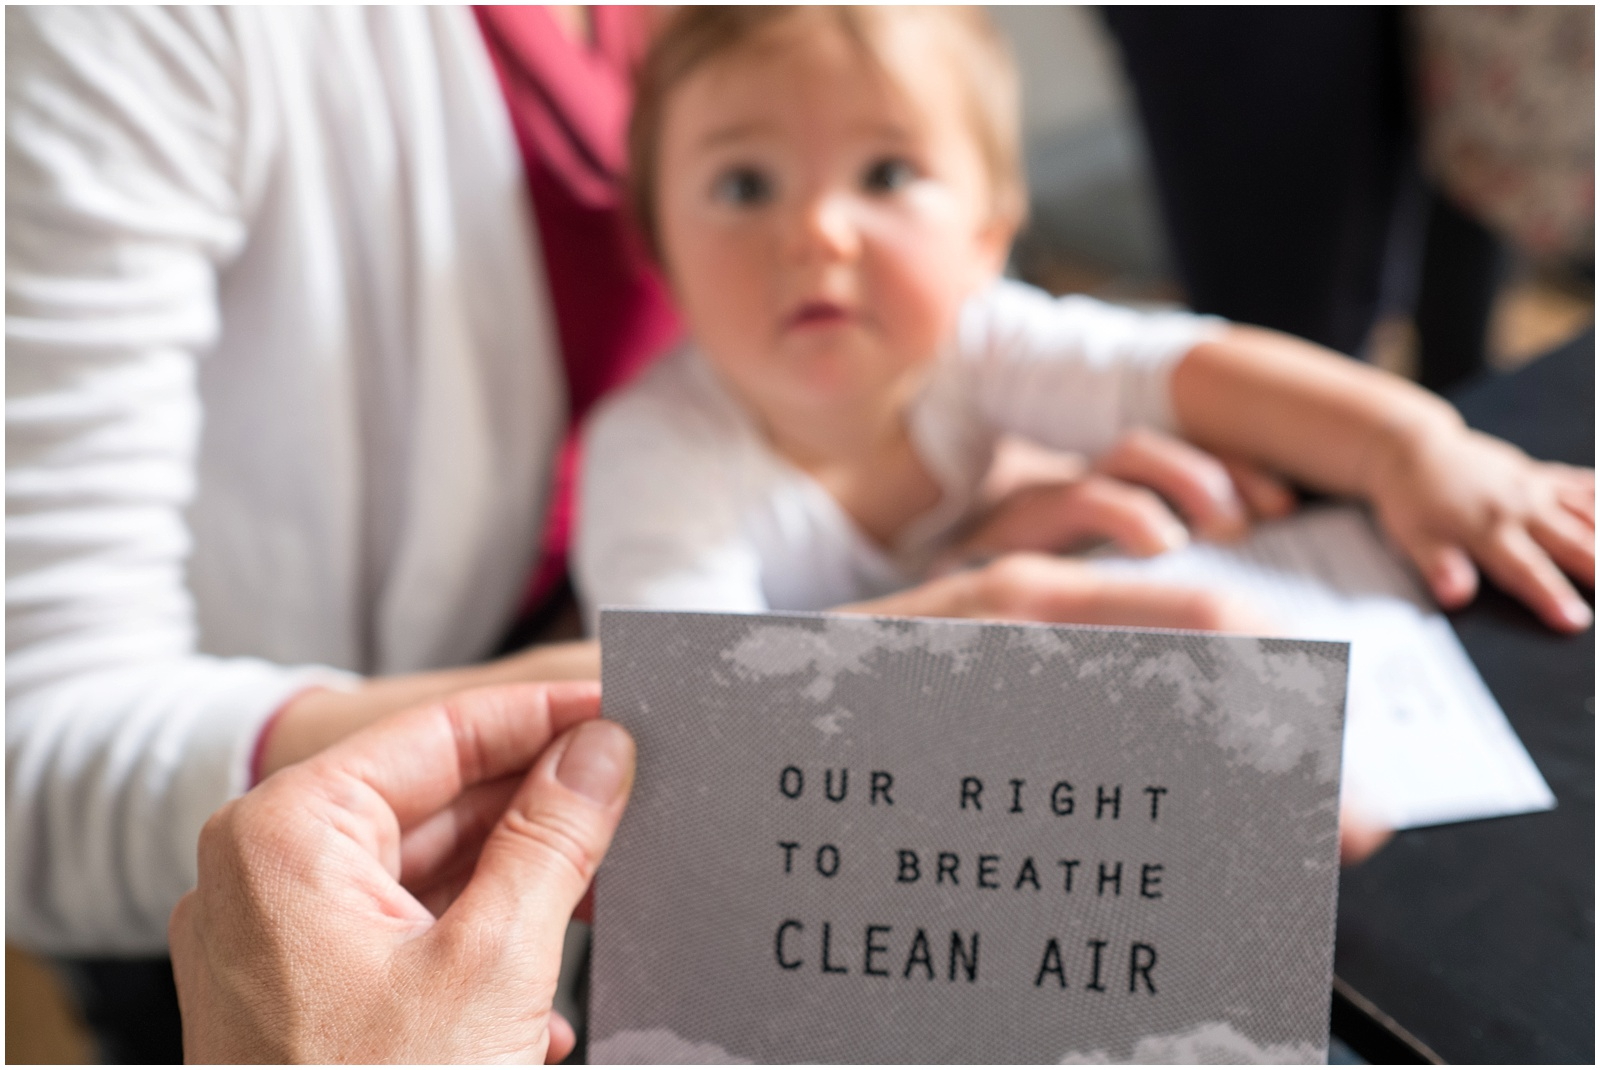 'Our right to breathe clean air'